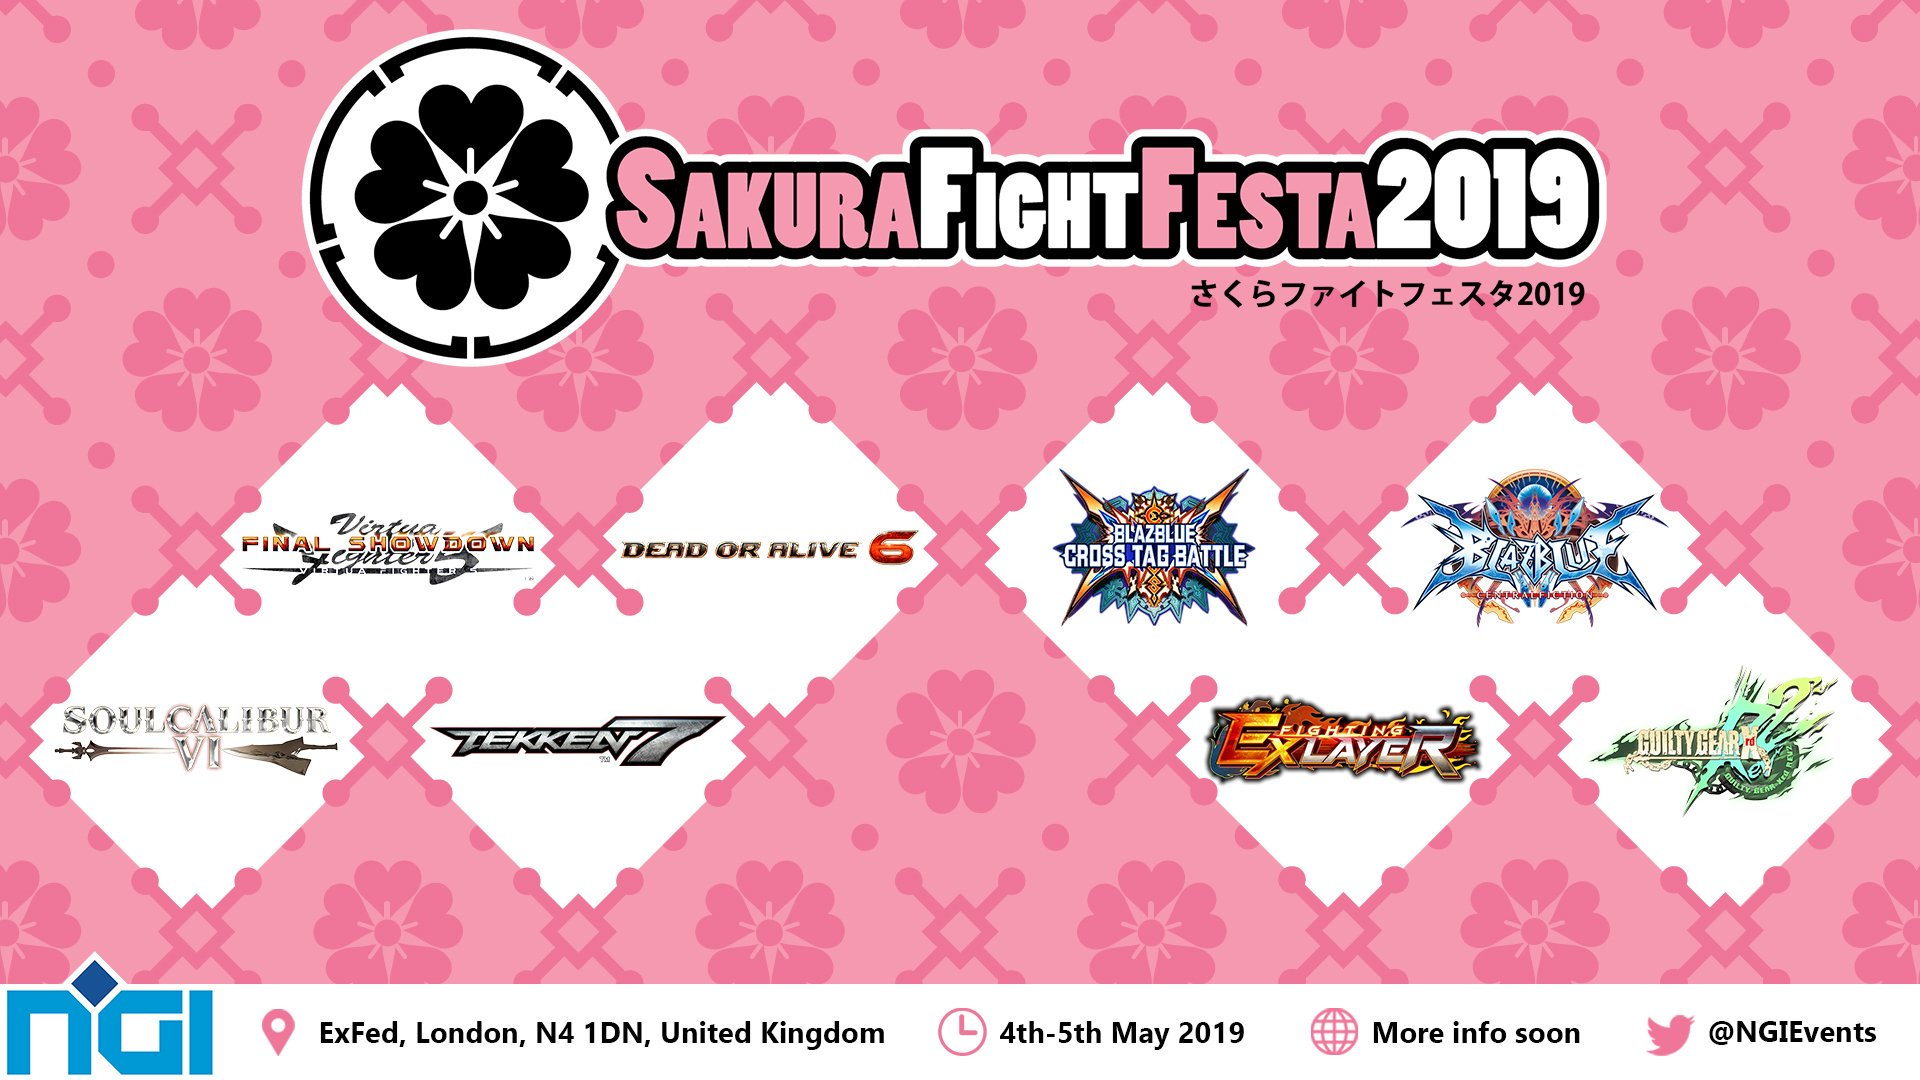 Sakura Fight Festa 2019.jpg